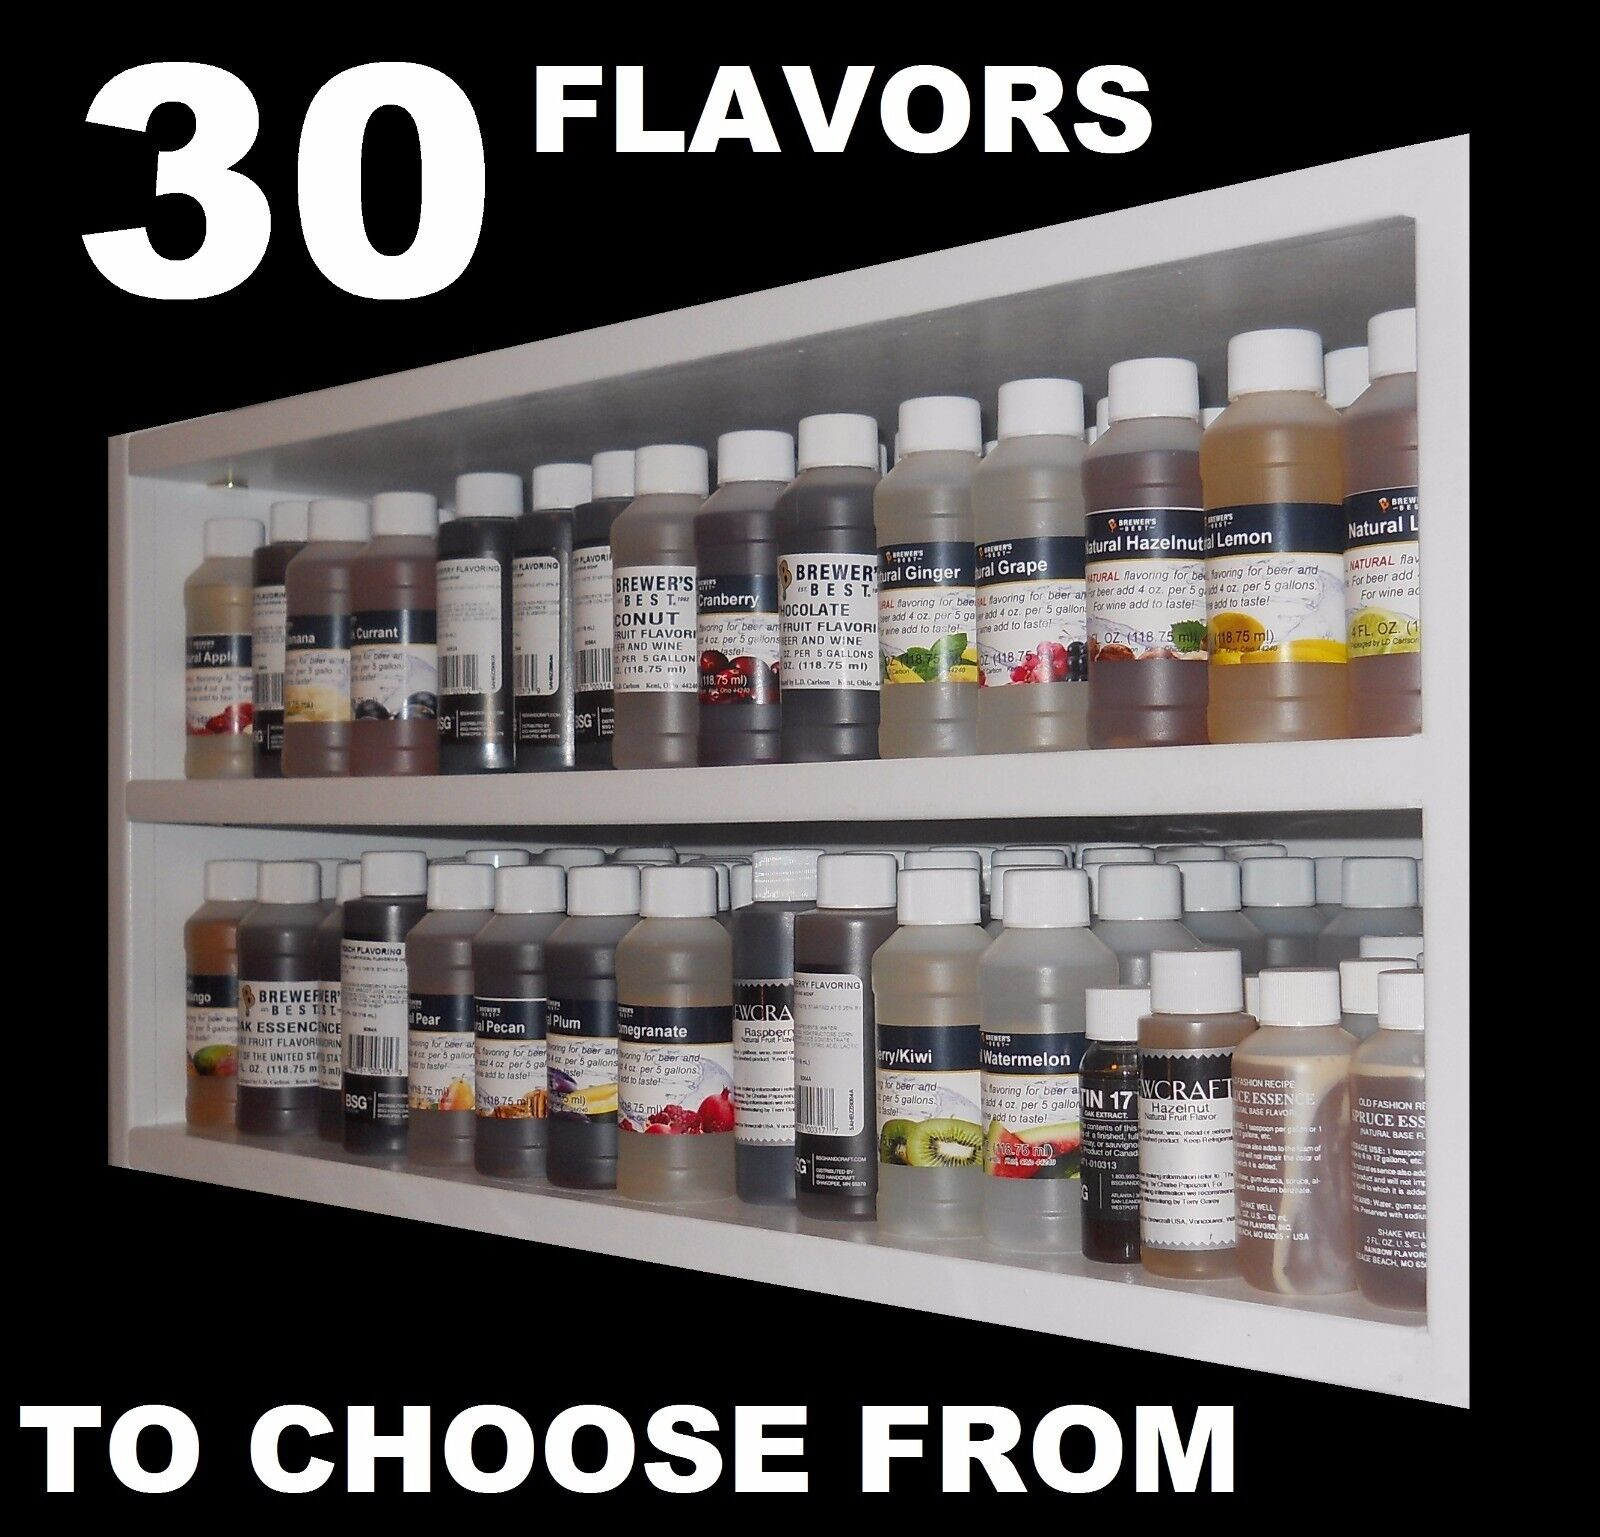 $3.95 - FLAVORINGS CHOOSE FROM 30 HOME BREWING FLAVORS FOR HOMEBREW BEER WINE MOONSHINE